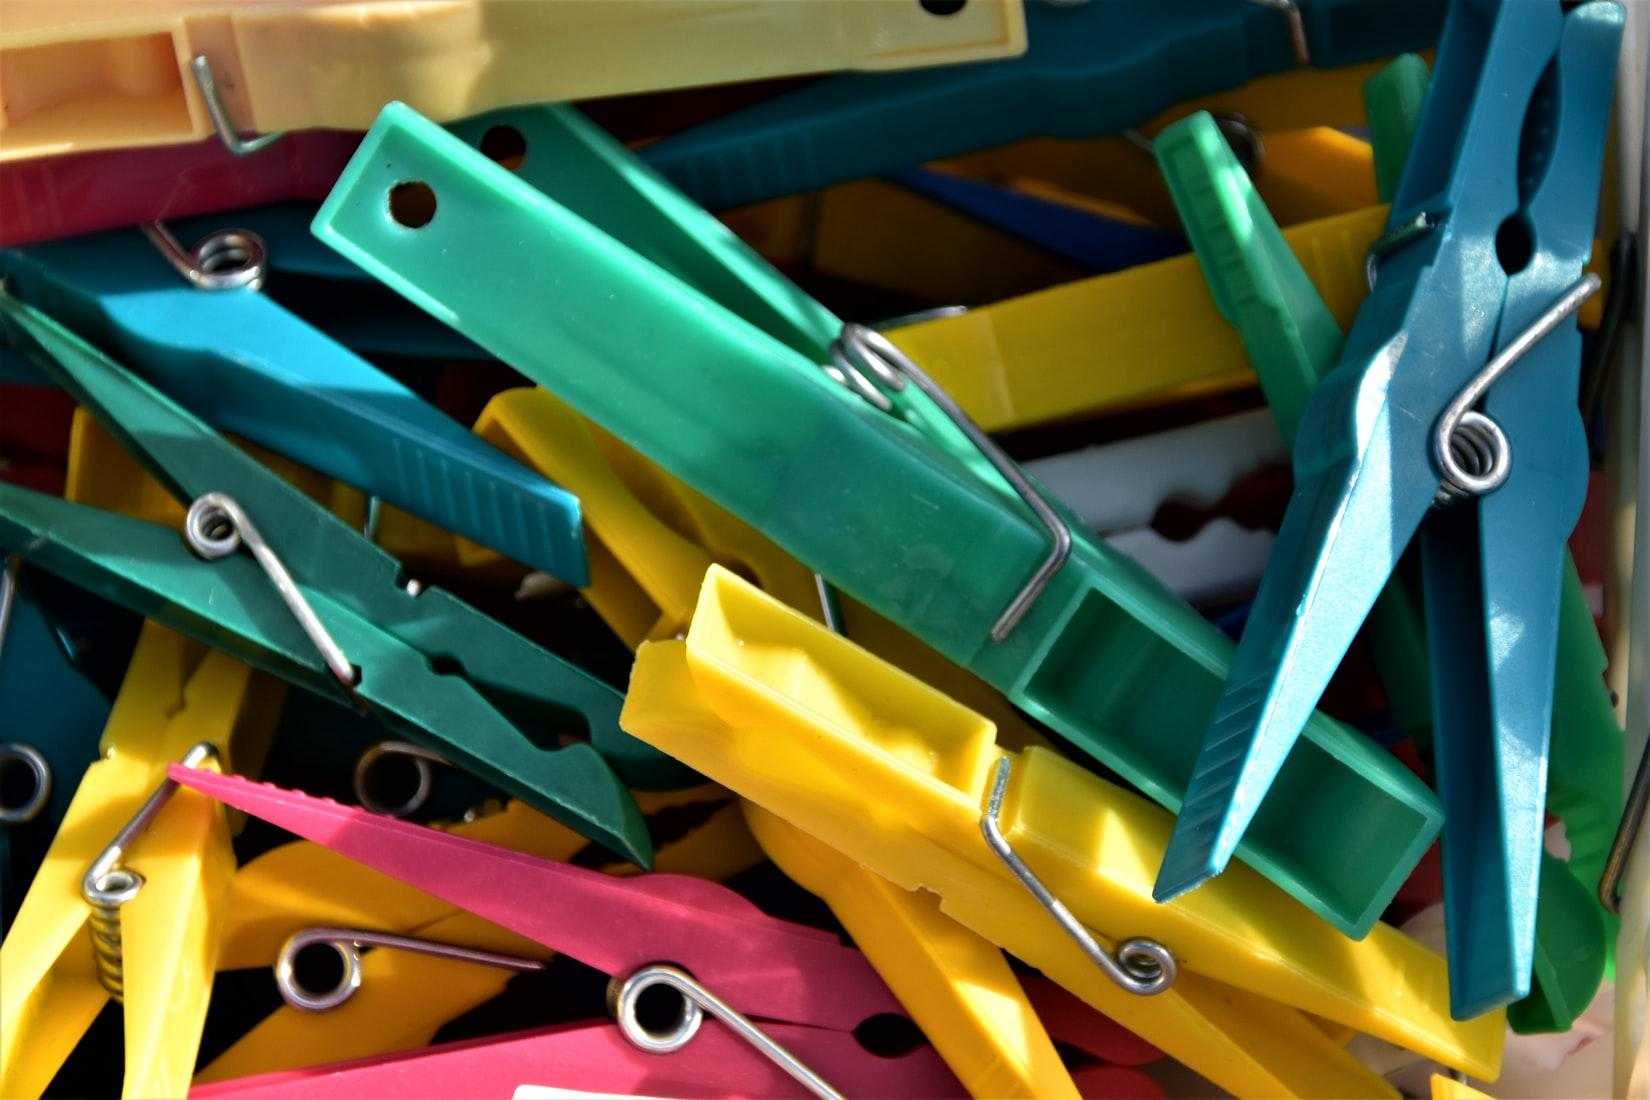 Different colors of clothespin put together.